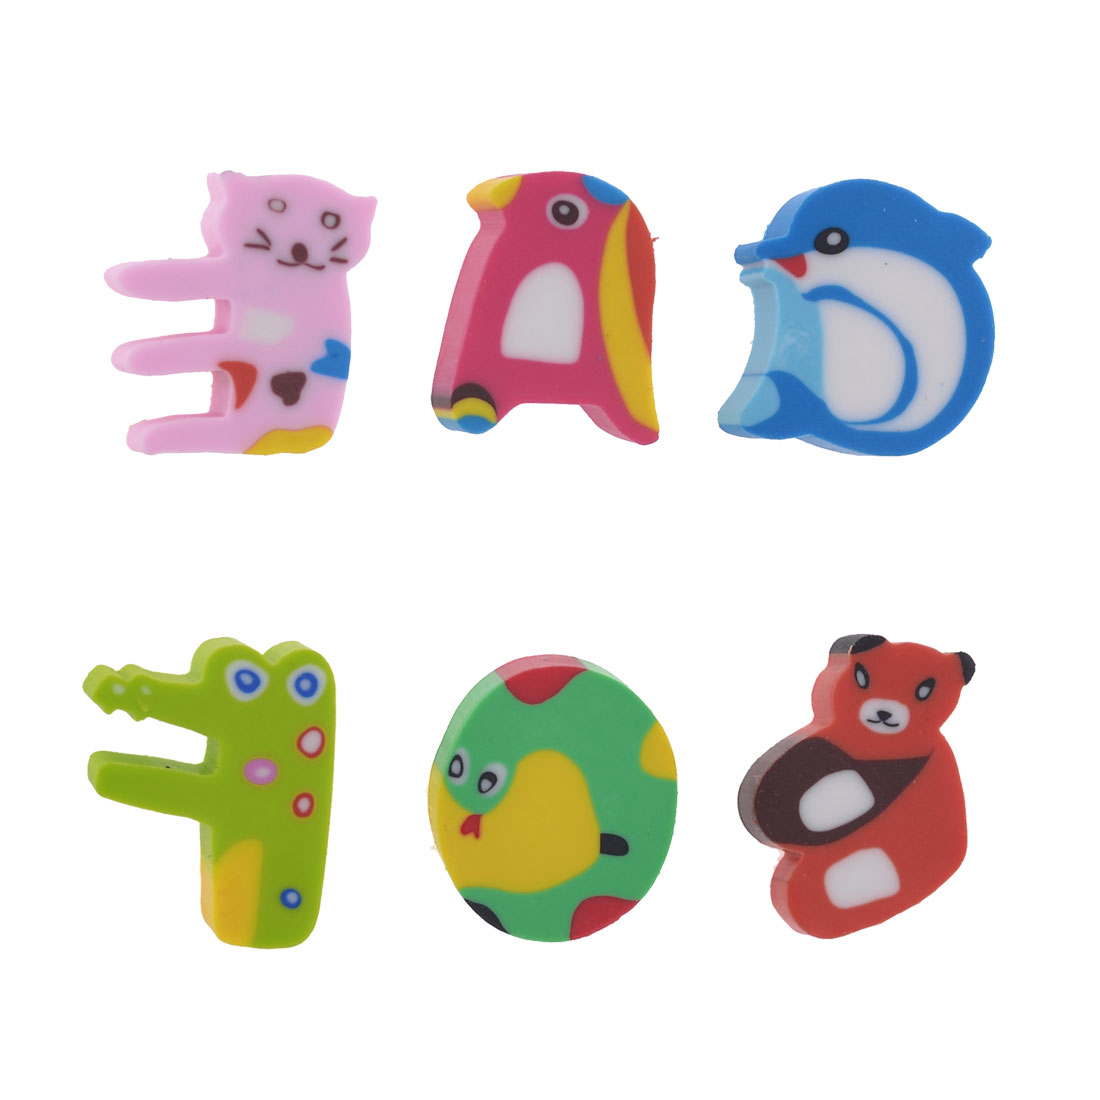 6 Pcs Multicolor Child Cartoon Animal Shaped Letter Rubber Erasers